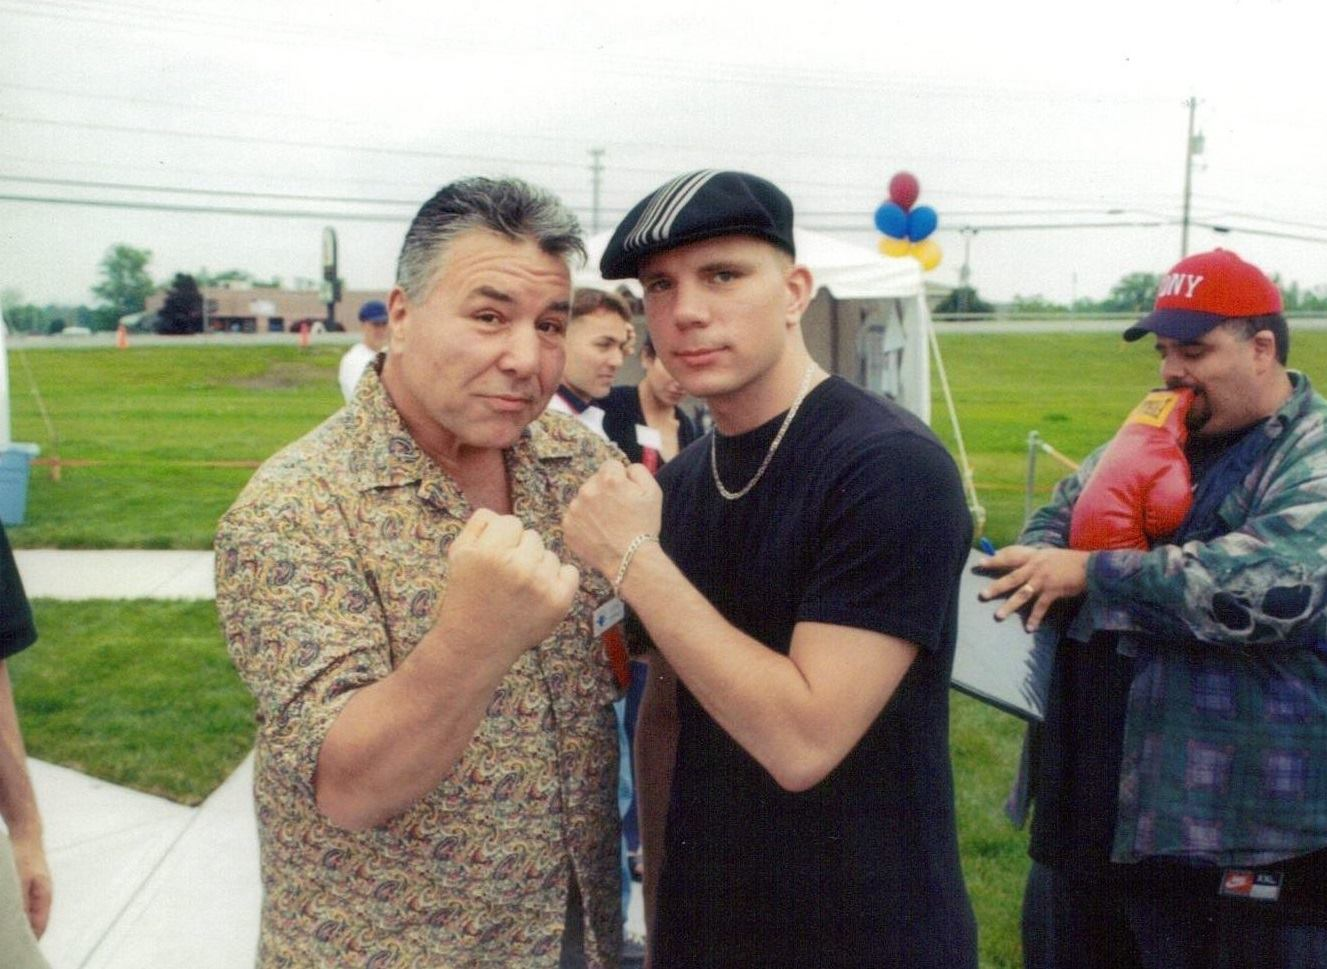 The USA Boxing News Writer/Reporter Kirk Lang with former heavyweight contender George Chuvalo